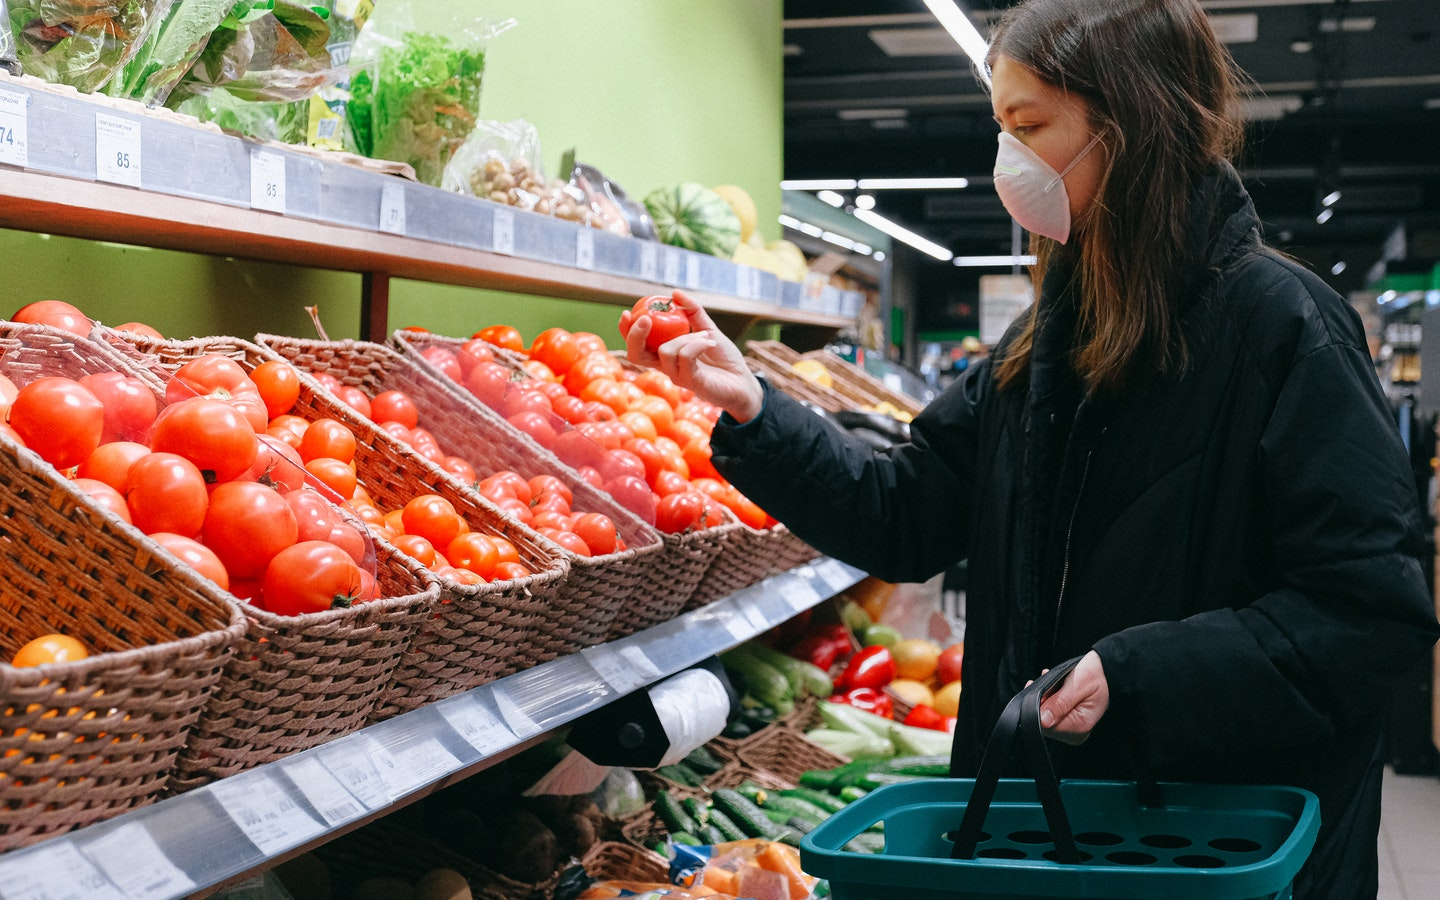 a woman wearing mask is checking a tomato